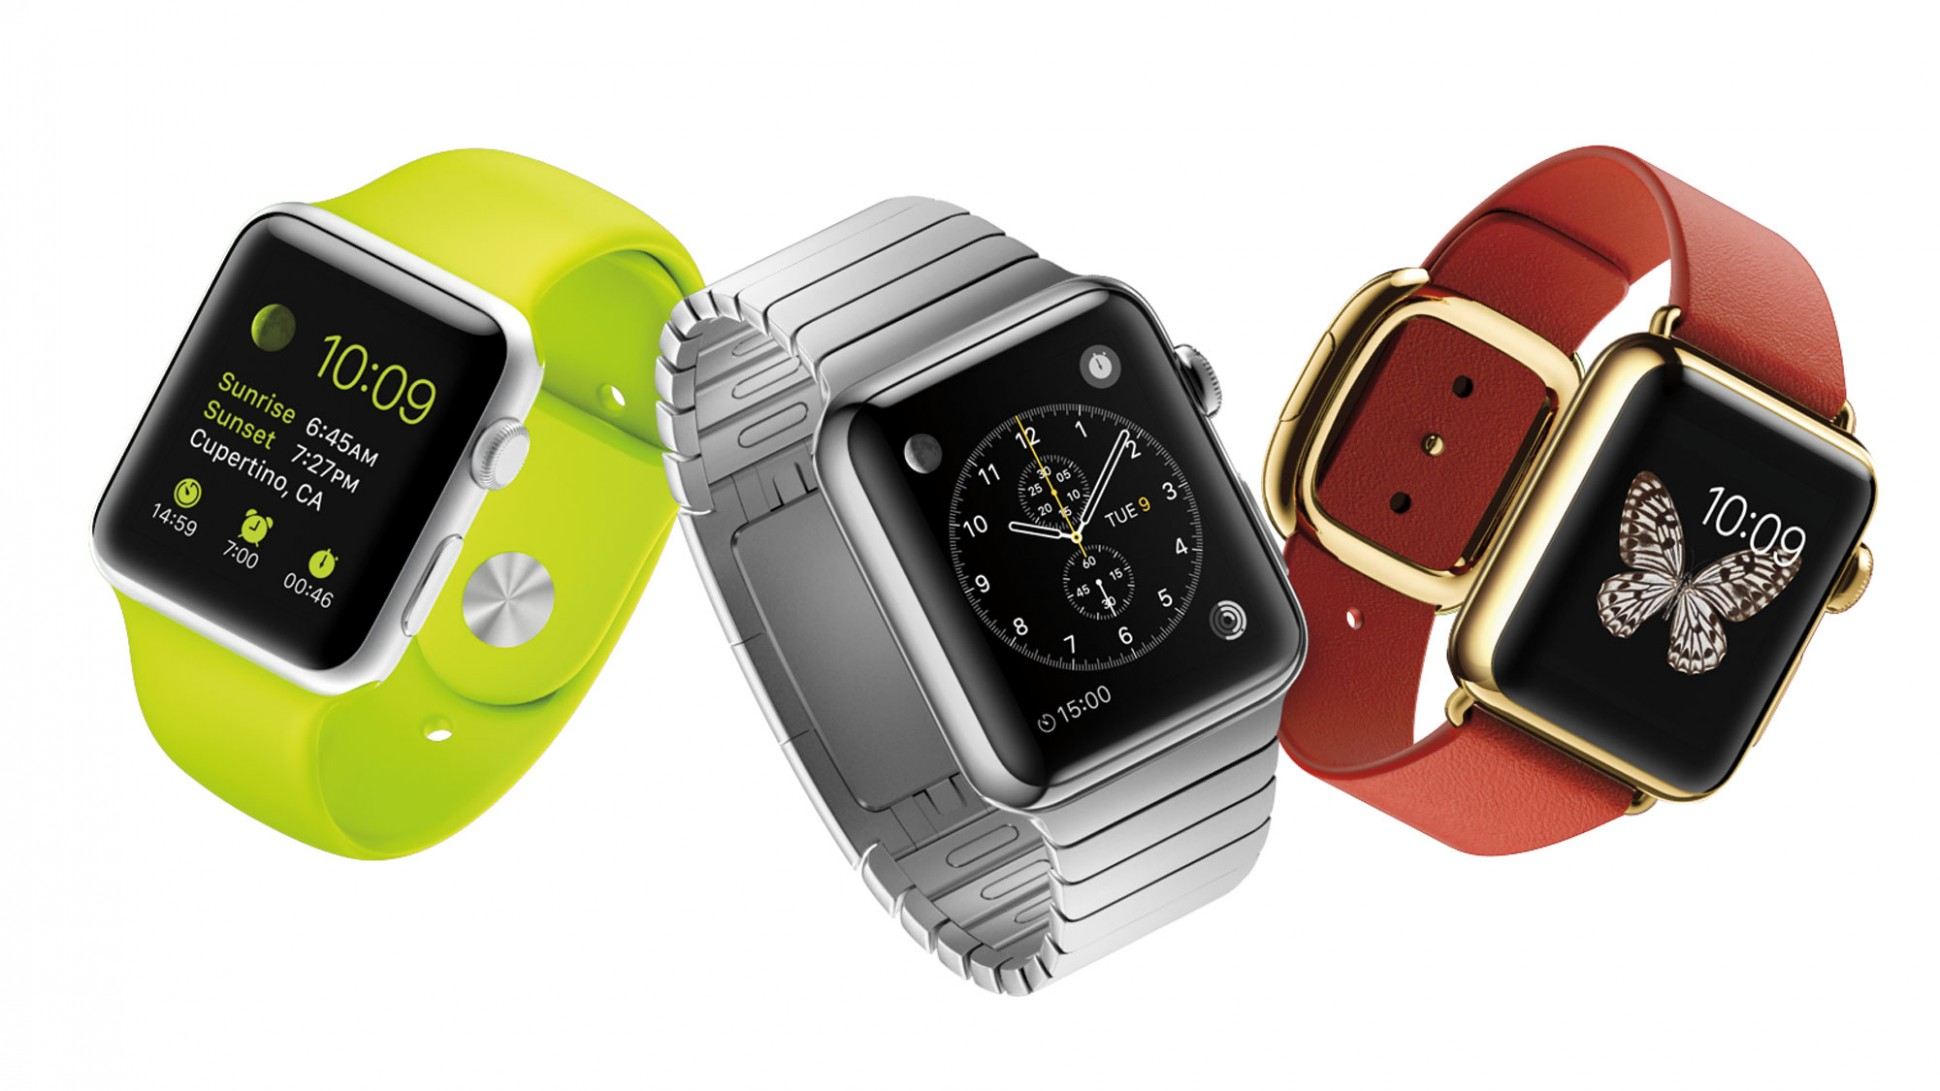 associare due Apple Watch ad un solo iPhone